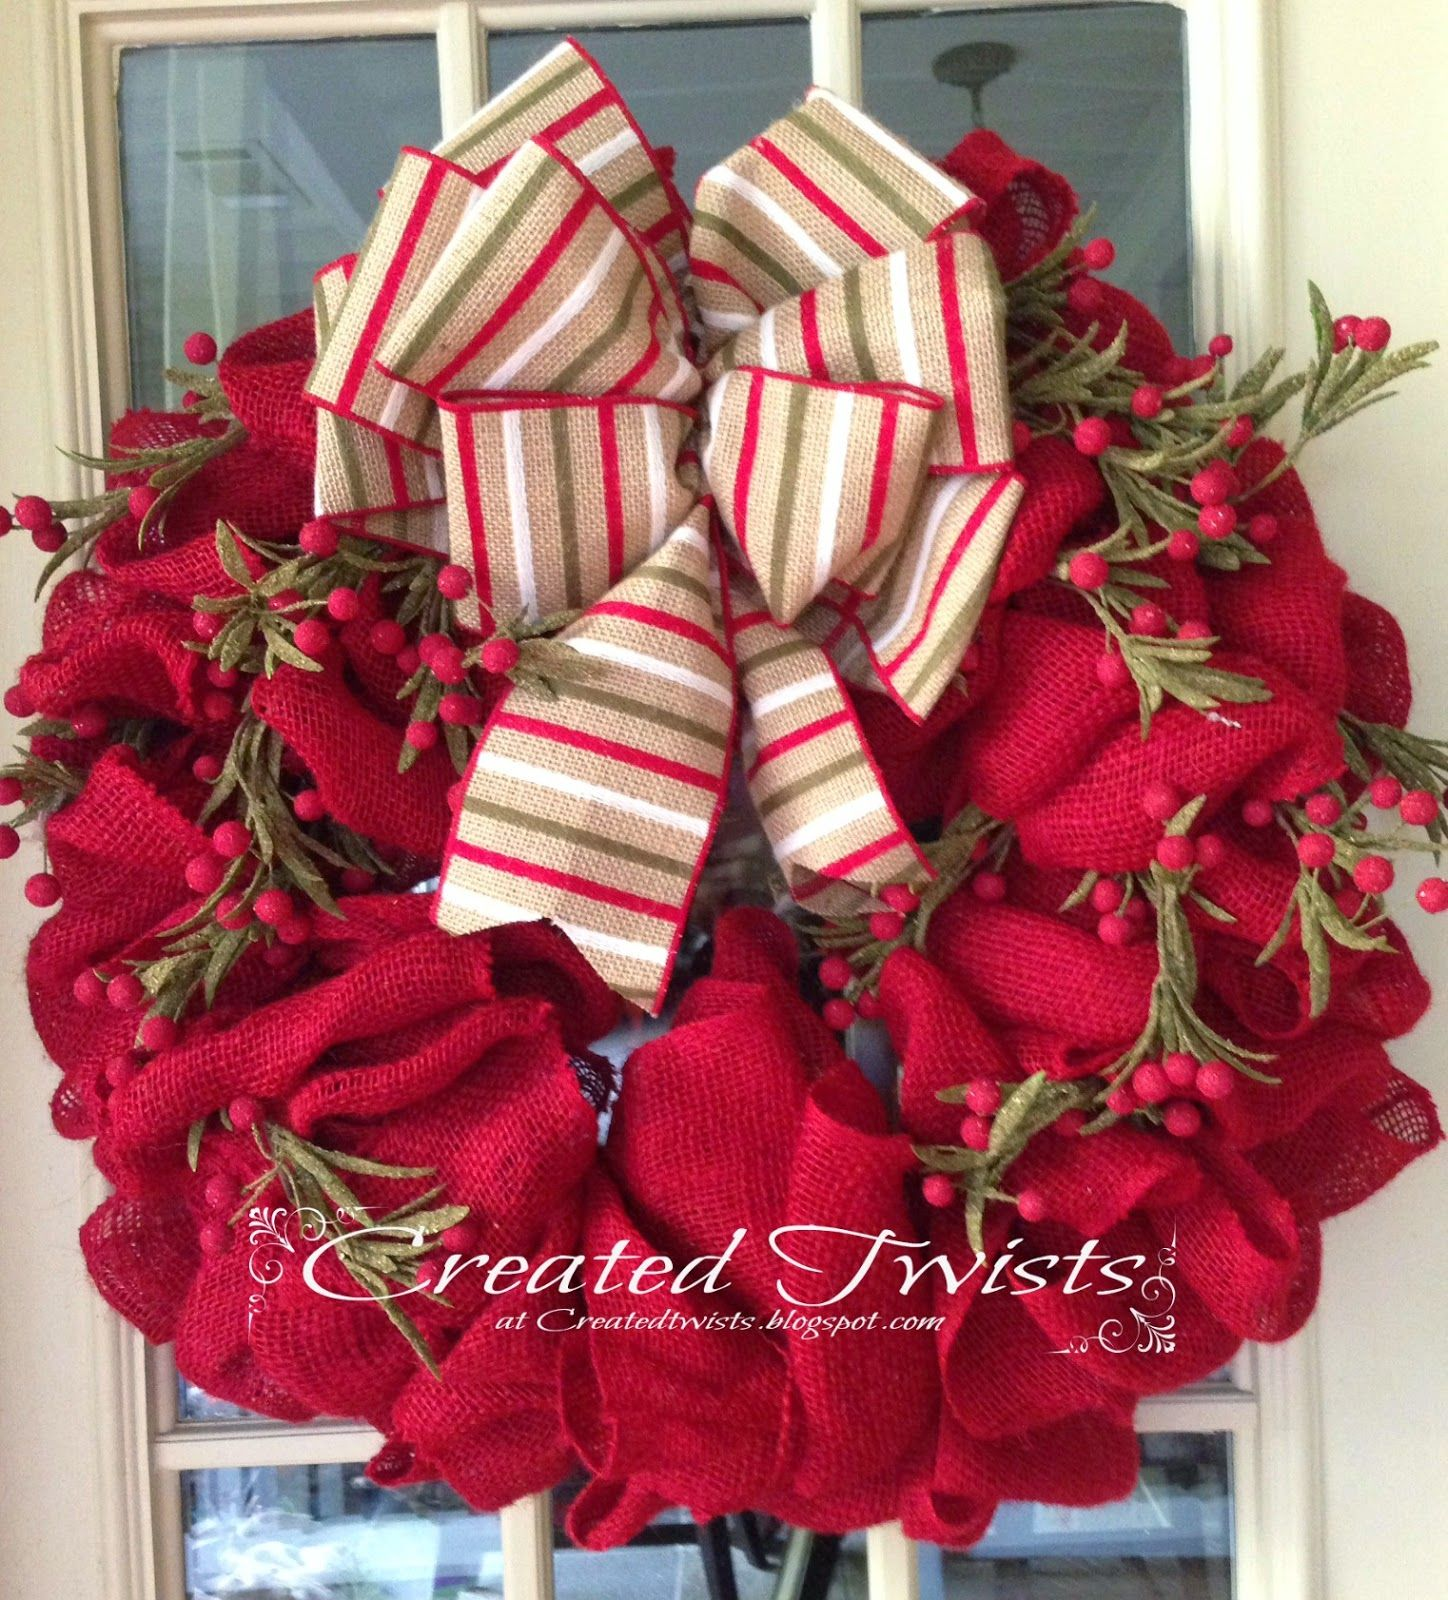 Red Burlap Christmas Wreath with Striped Ribbon and Twigs